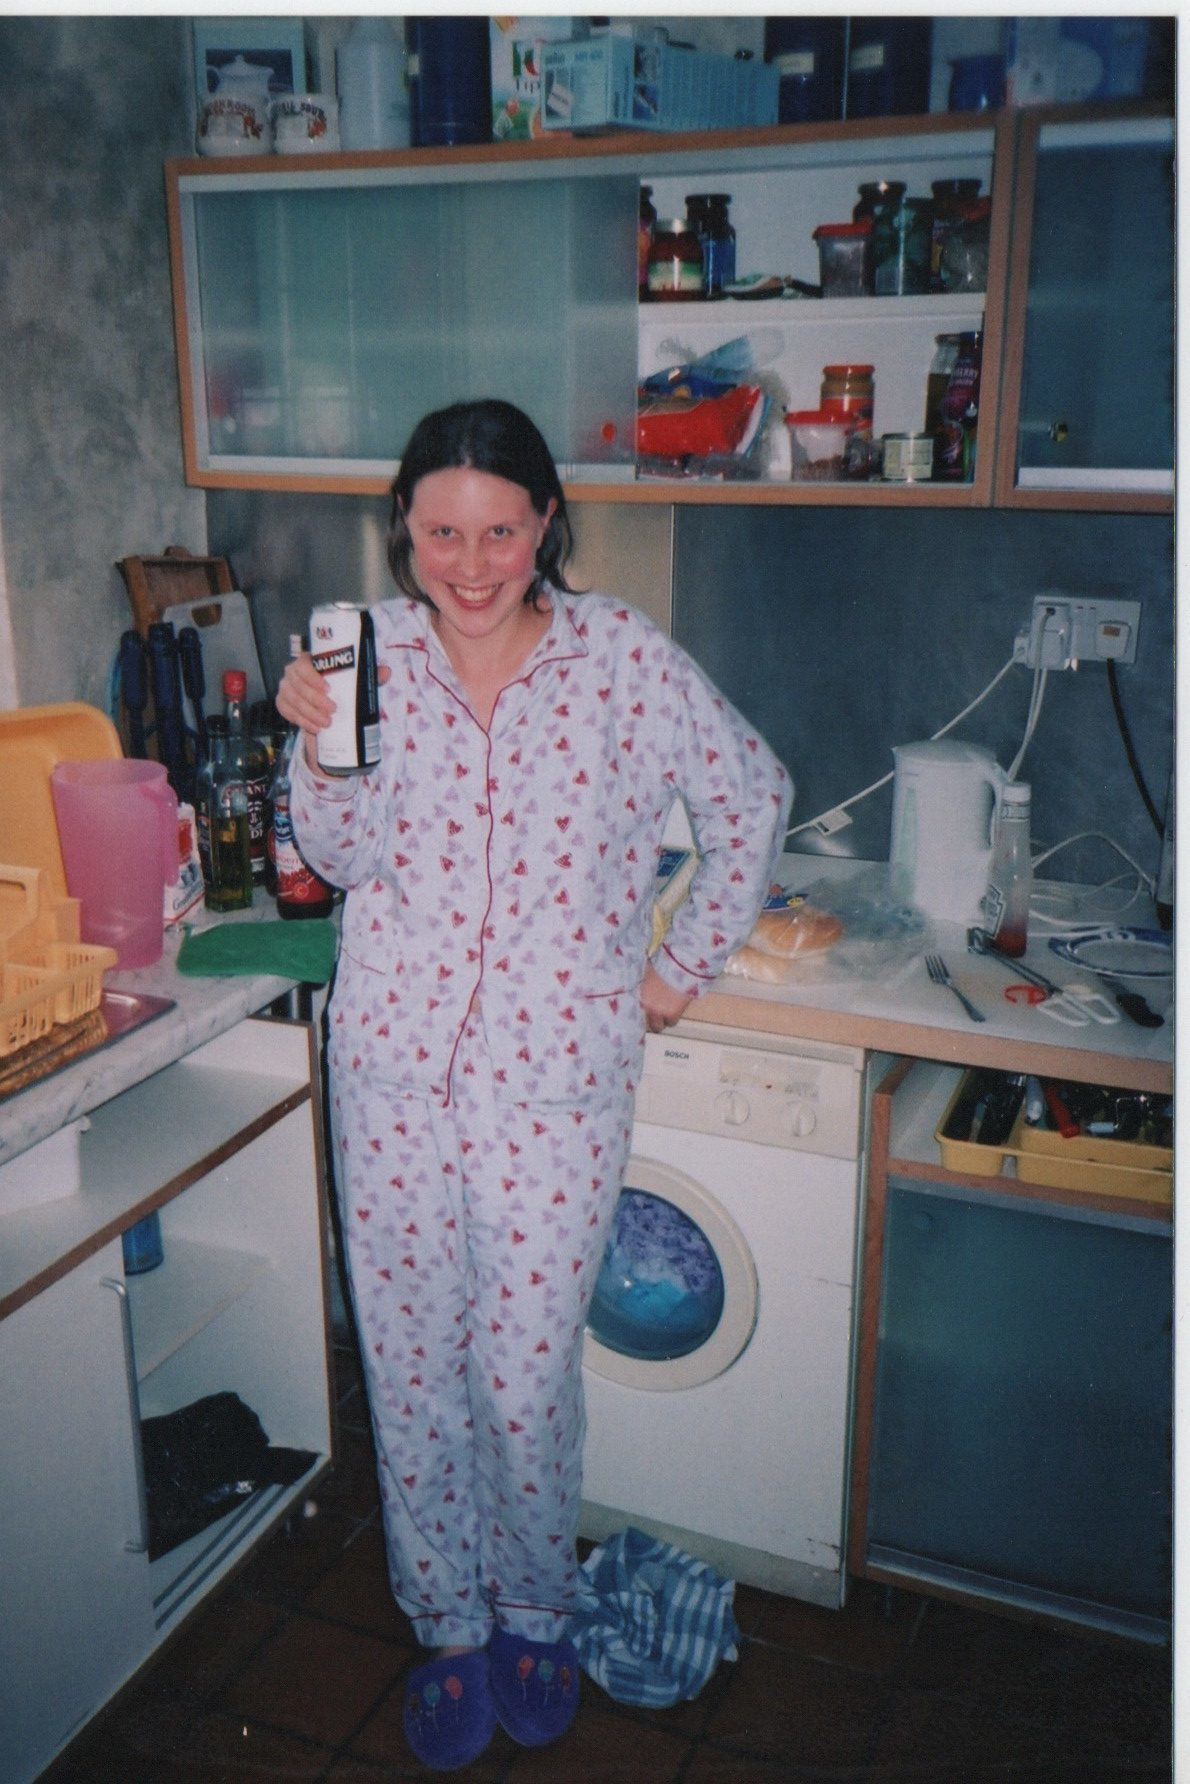 Liz drinking a can of Carling lager in the kitchen after finals.